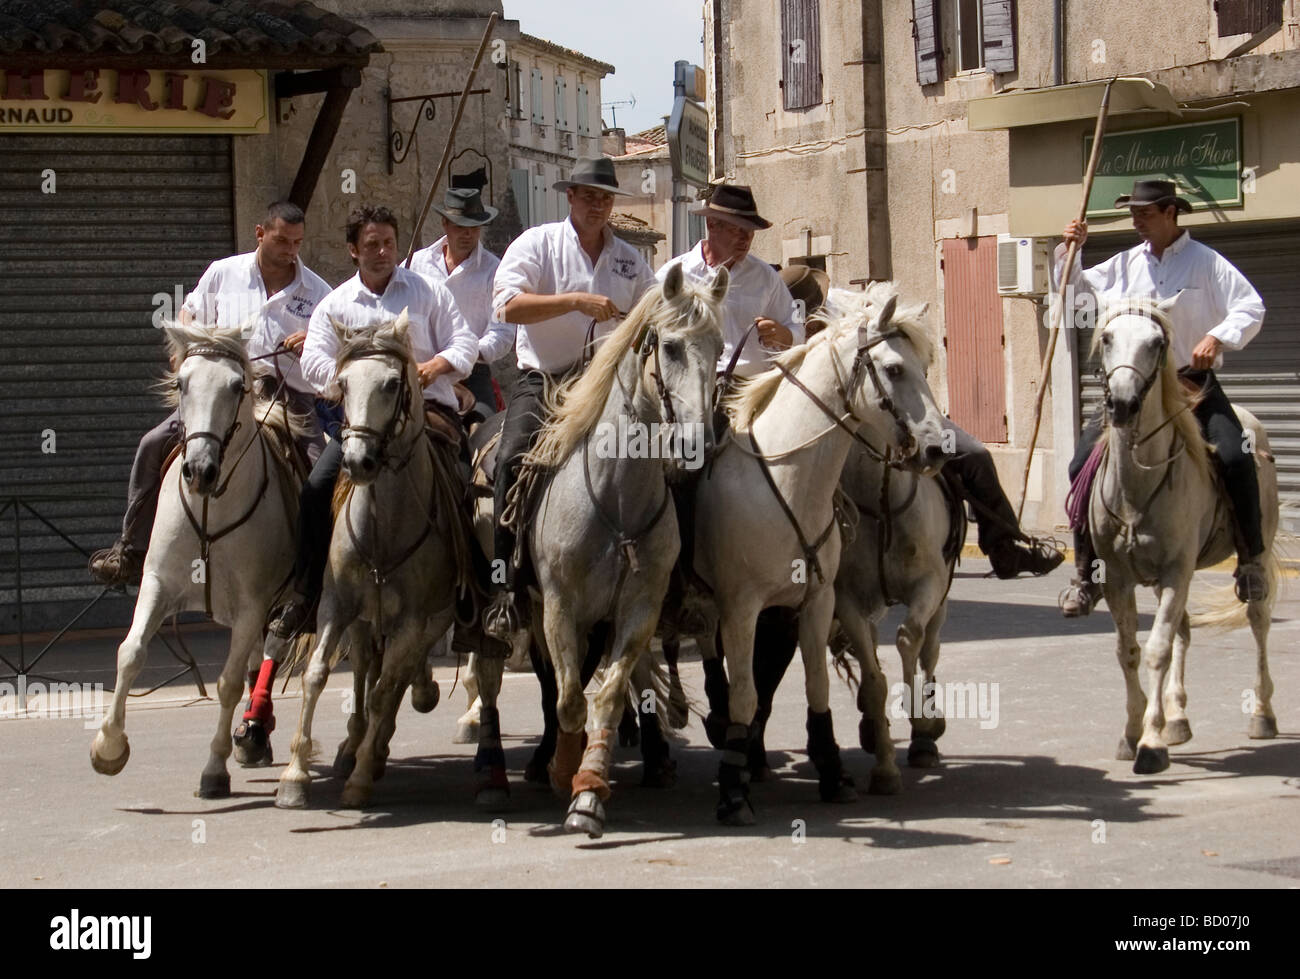 b3d27b52fda Camargue Guardians on their white horses herd the black bulls through the  streets on their way